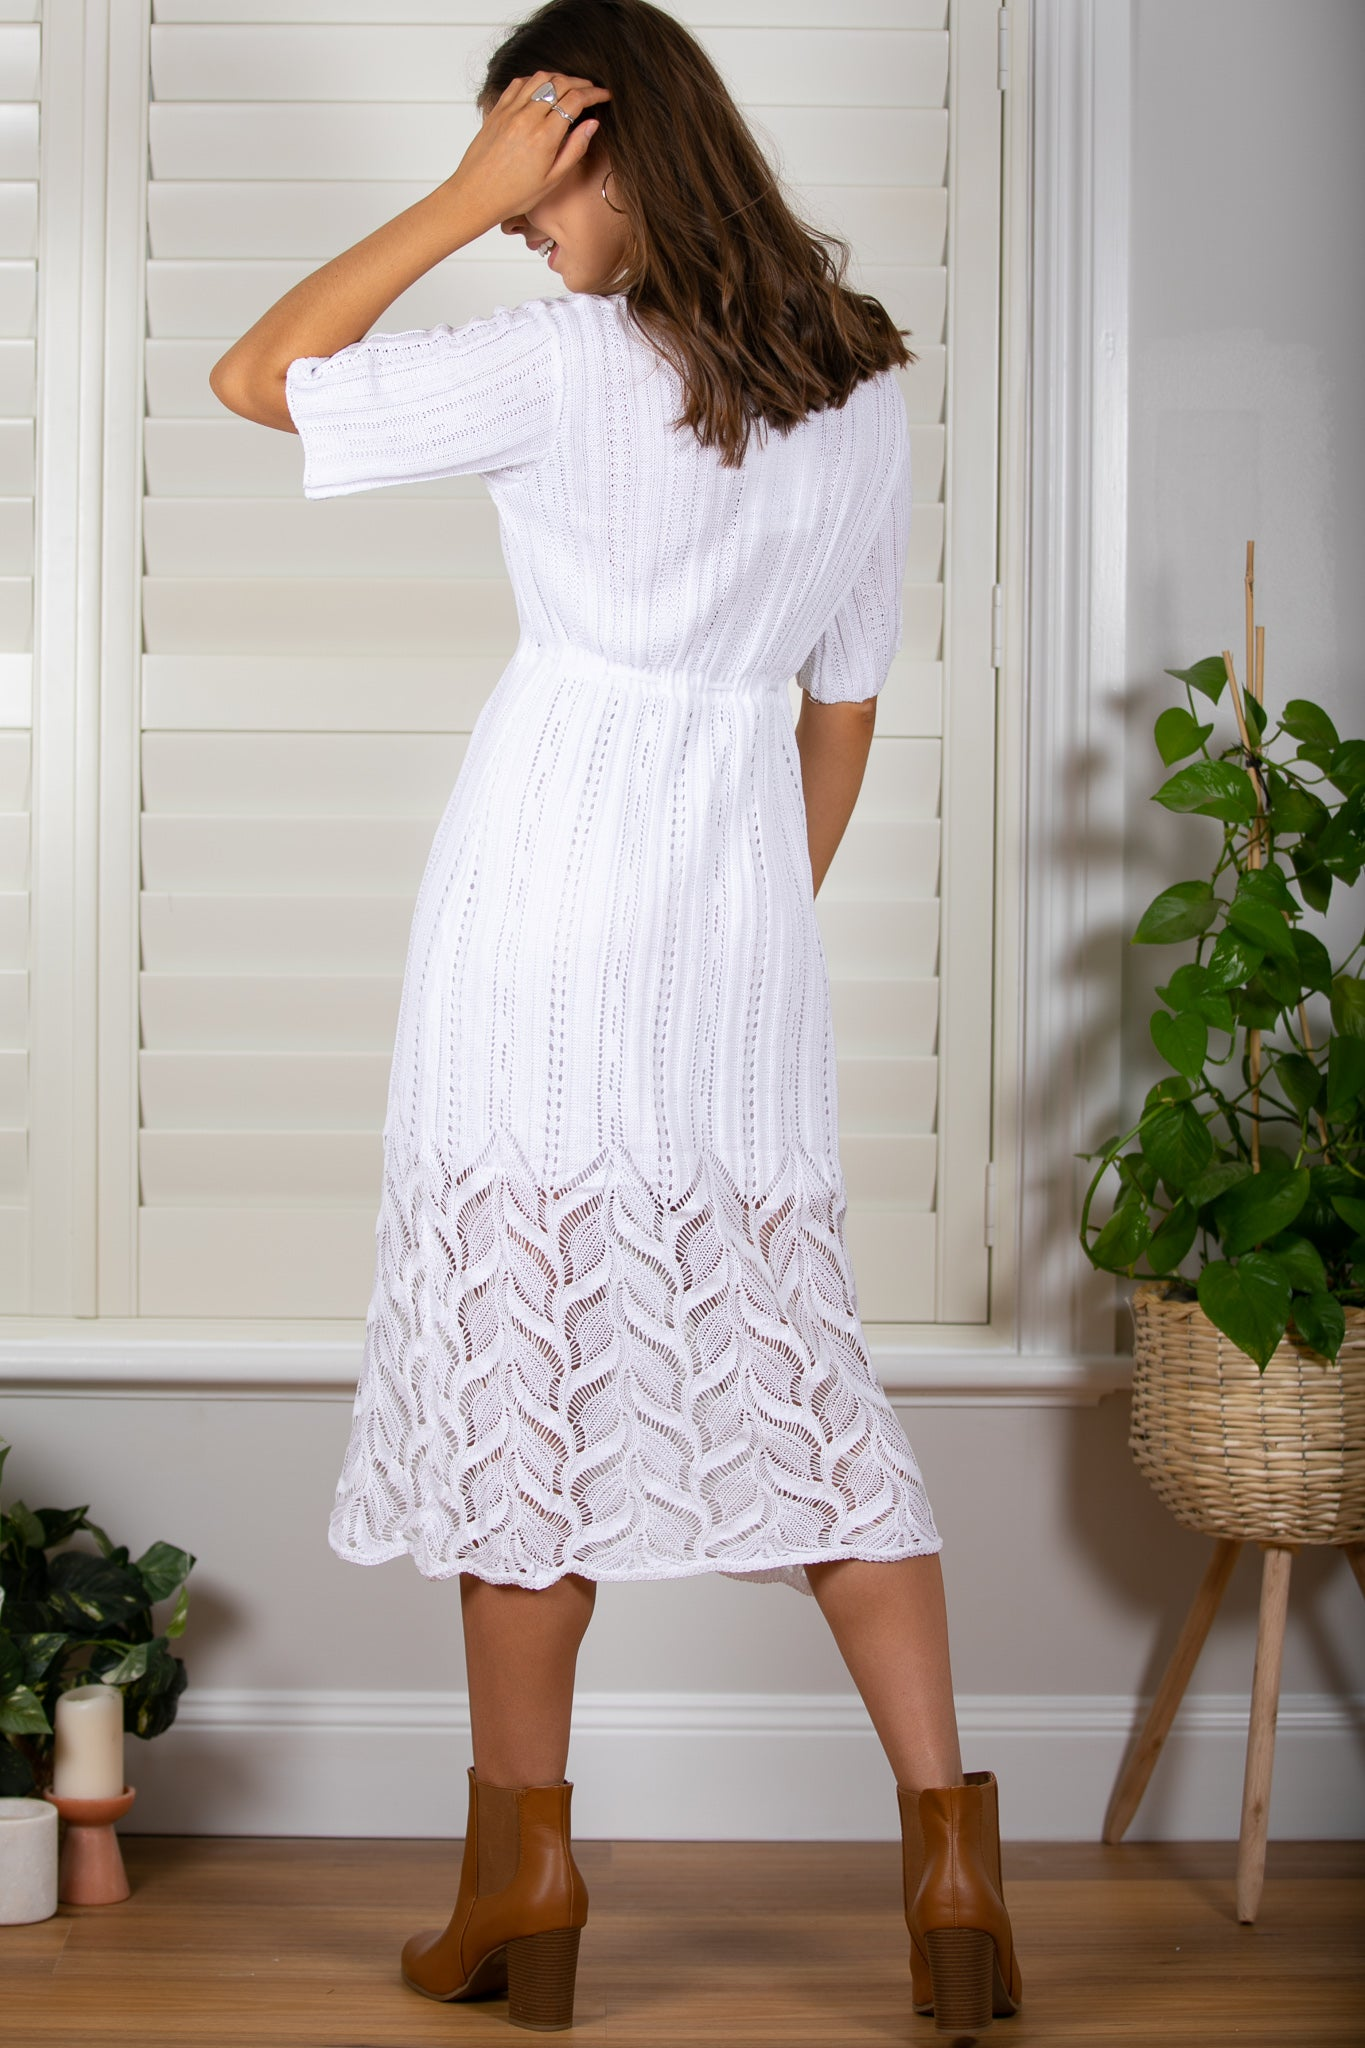 Estelle Dress in White